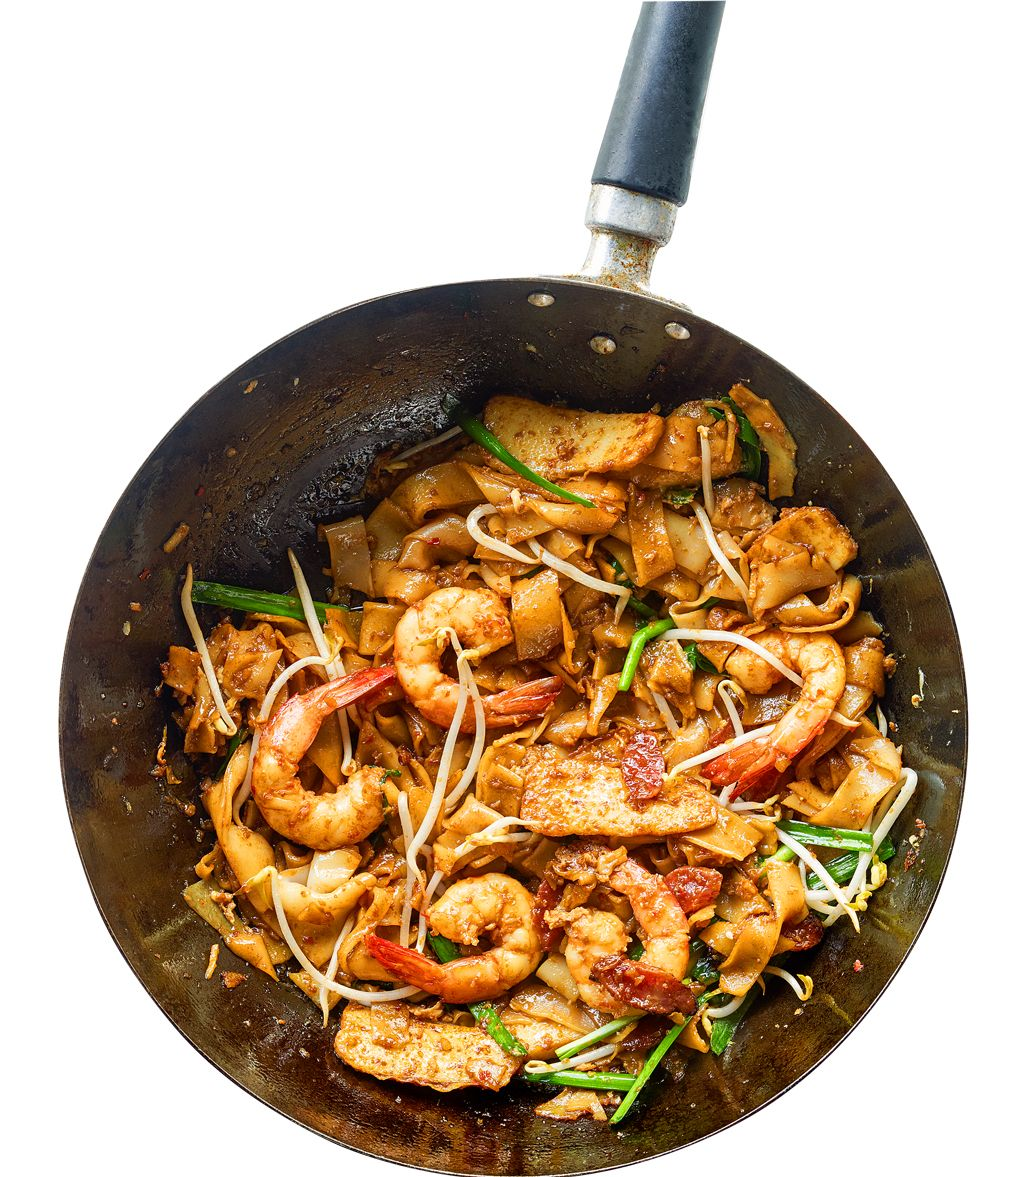 Char kway teow malaysian stir fried noodles with shrimp scallions char kway teow malaysian recipe via food safari sbs forumfinder Image collections